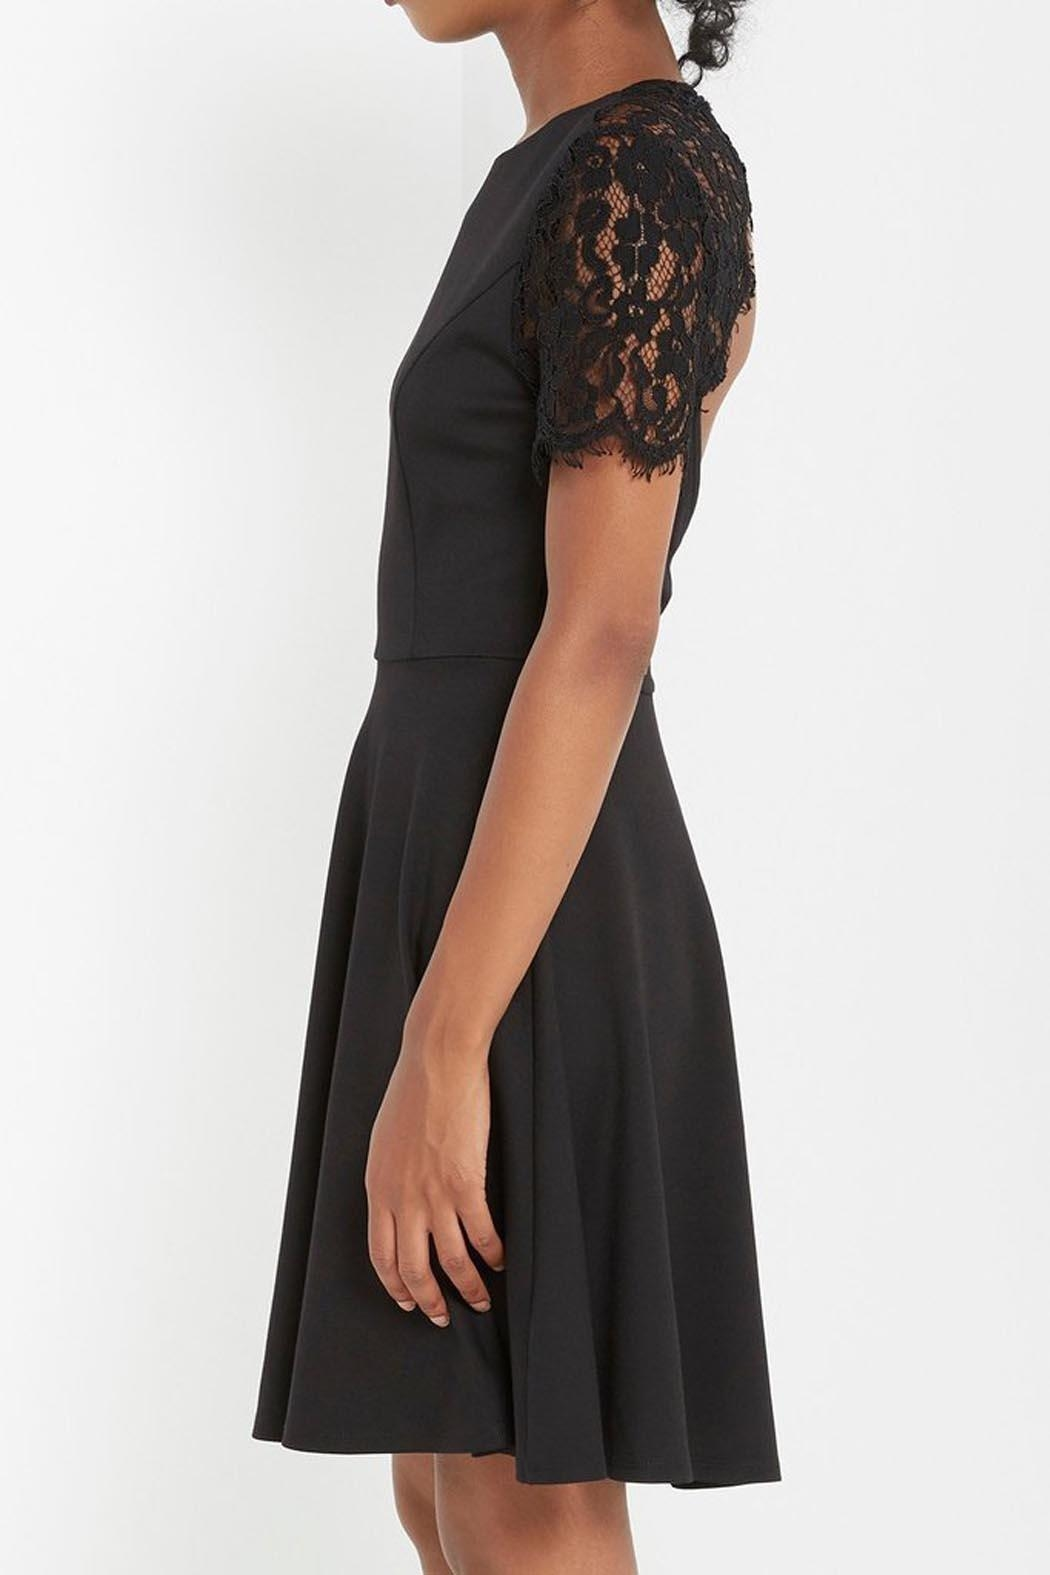 Soprano Black Lace Dress - Side Cropped Image